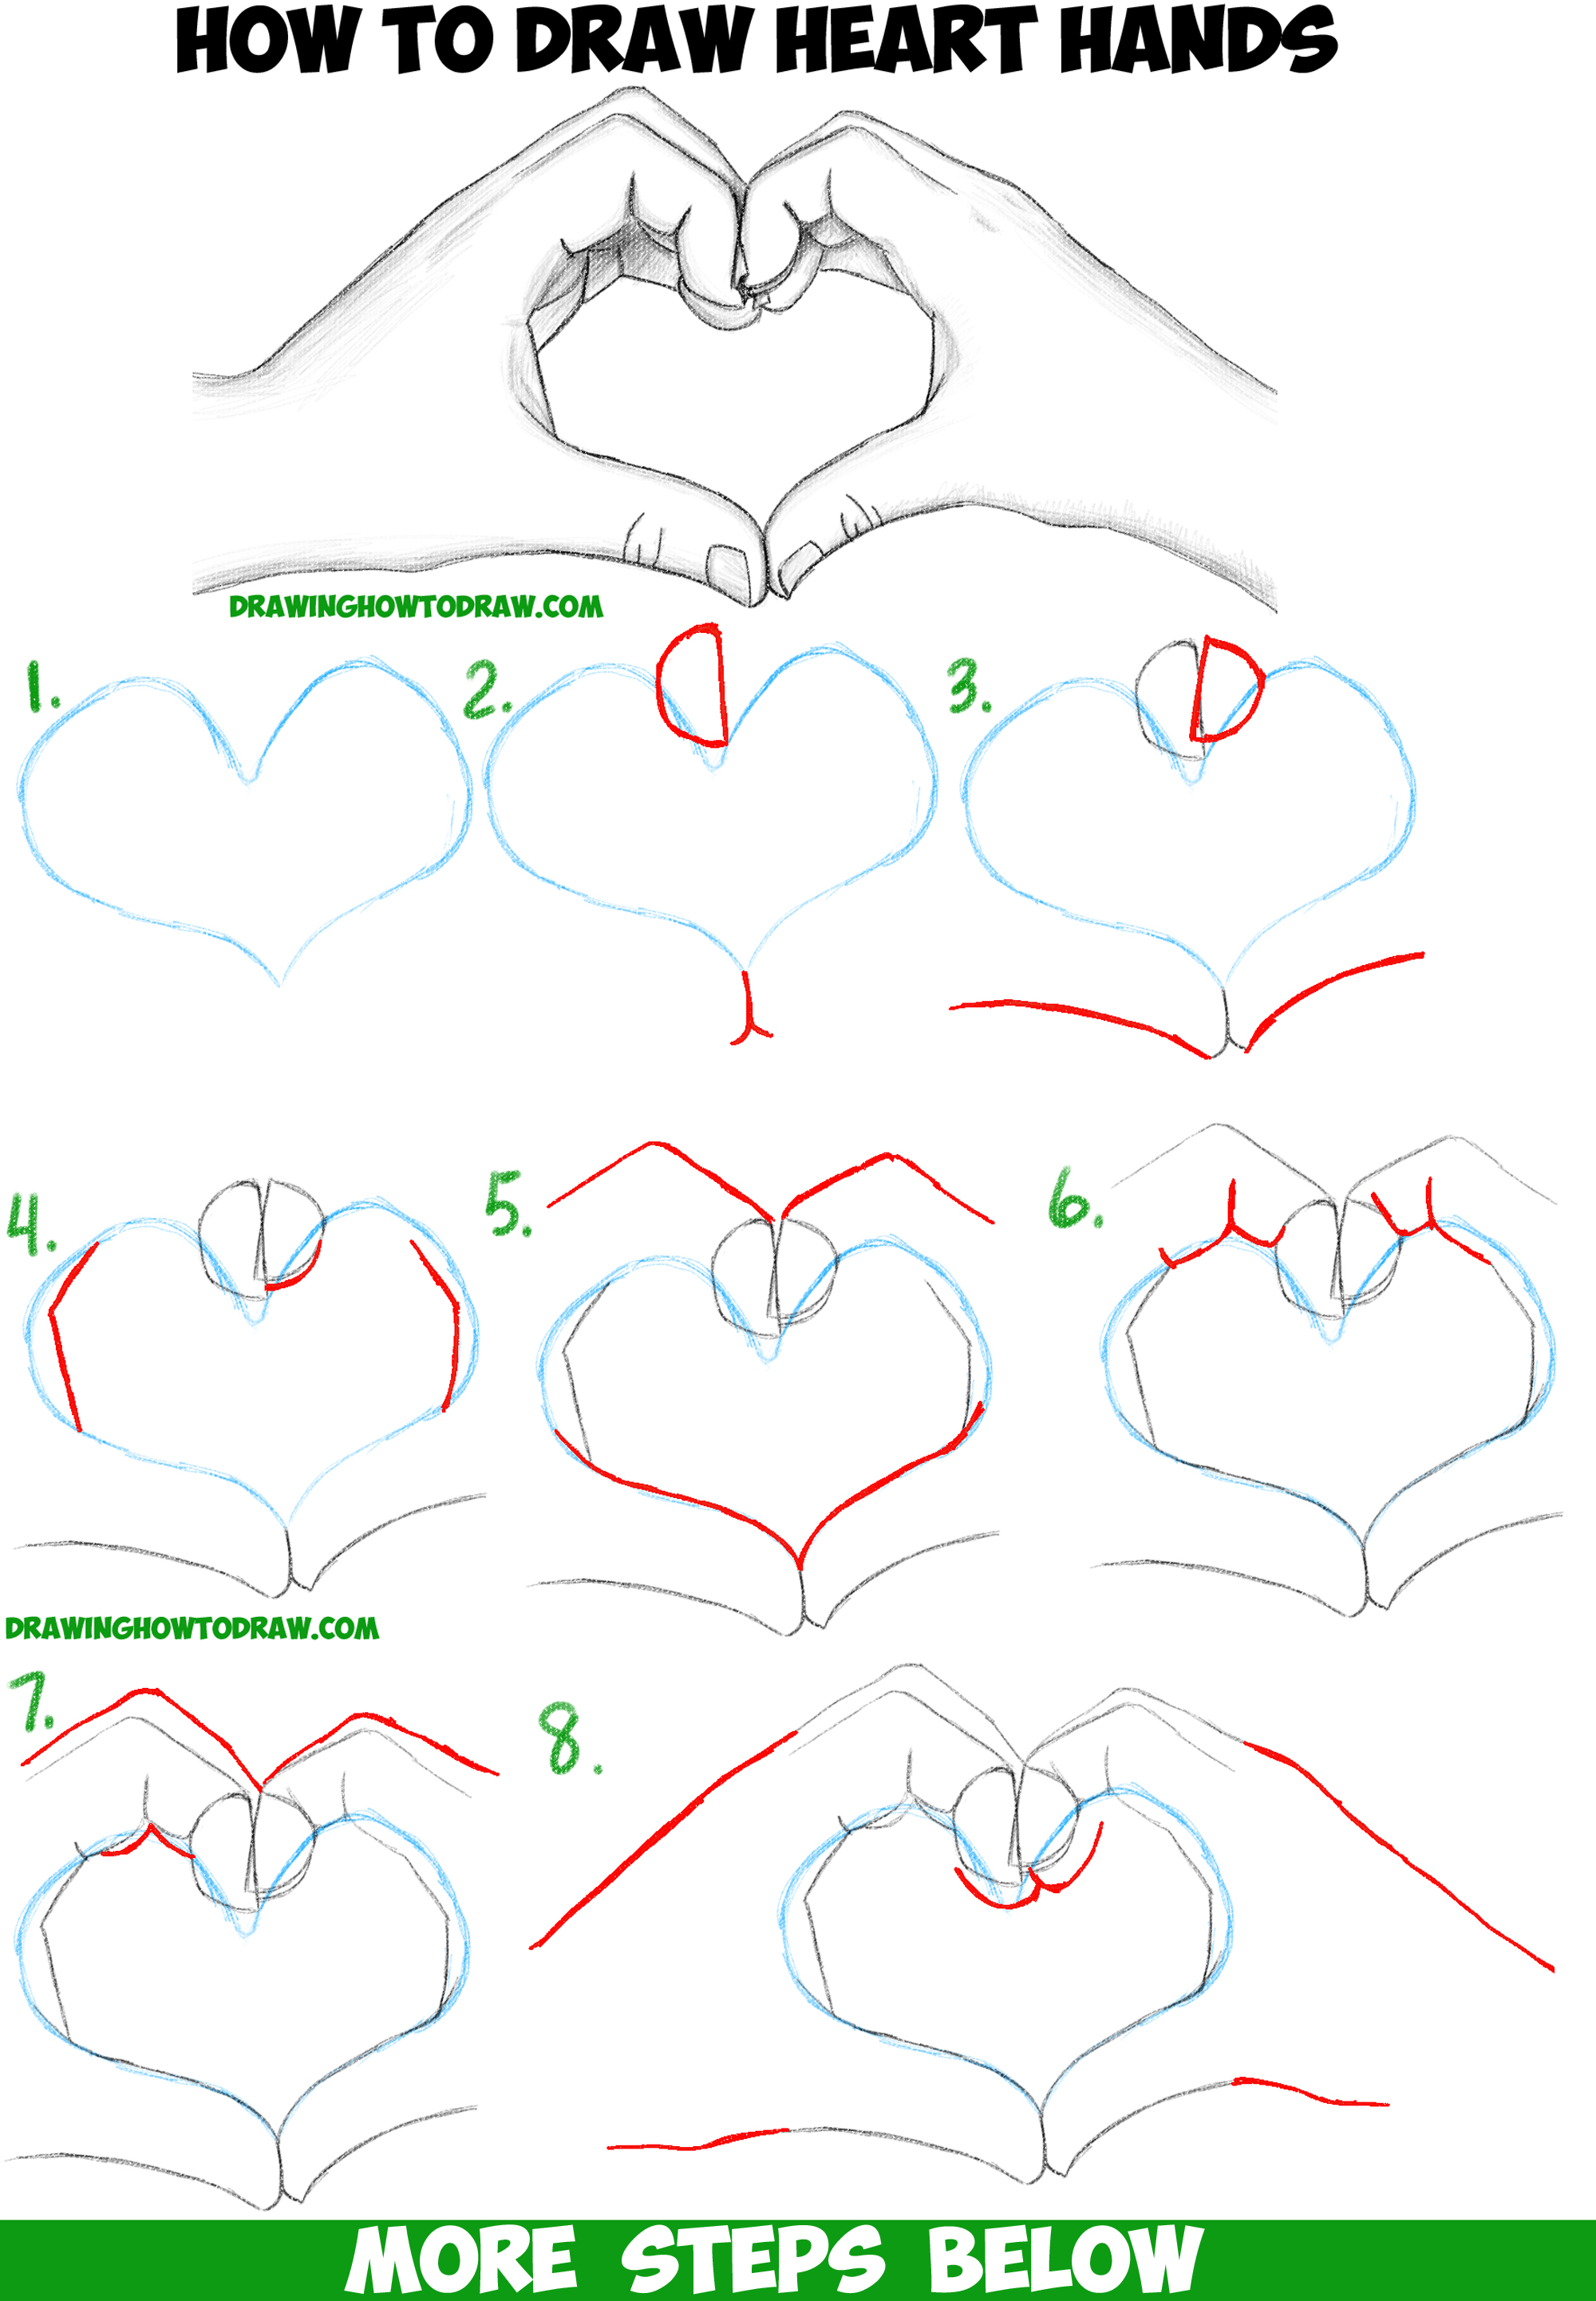 Drawing Lines Meaning : How to draw heart hands in easy follow step by